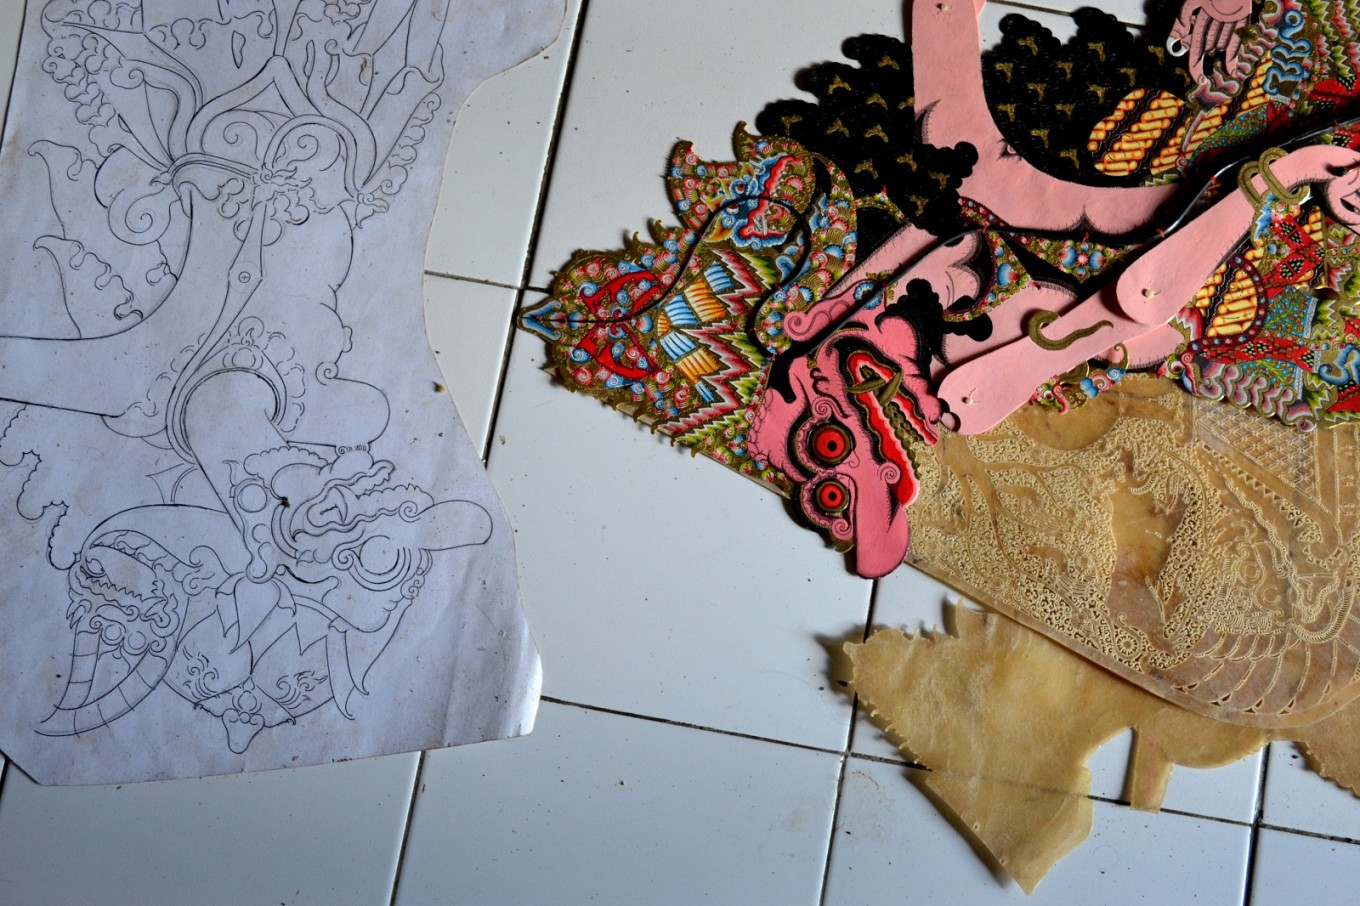 The process of making 'wayang kulit' starts from an early sketch on paper.